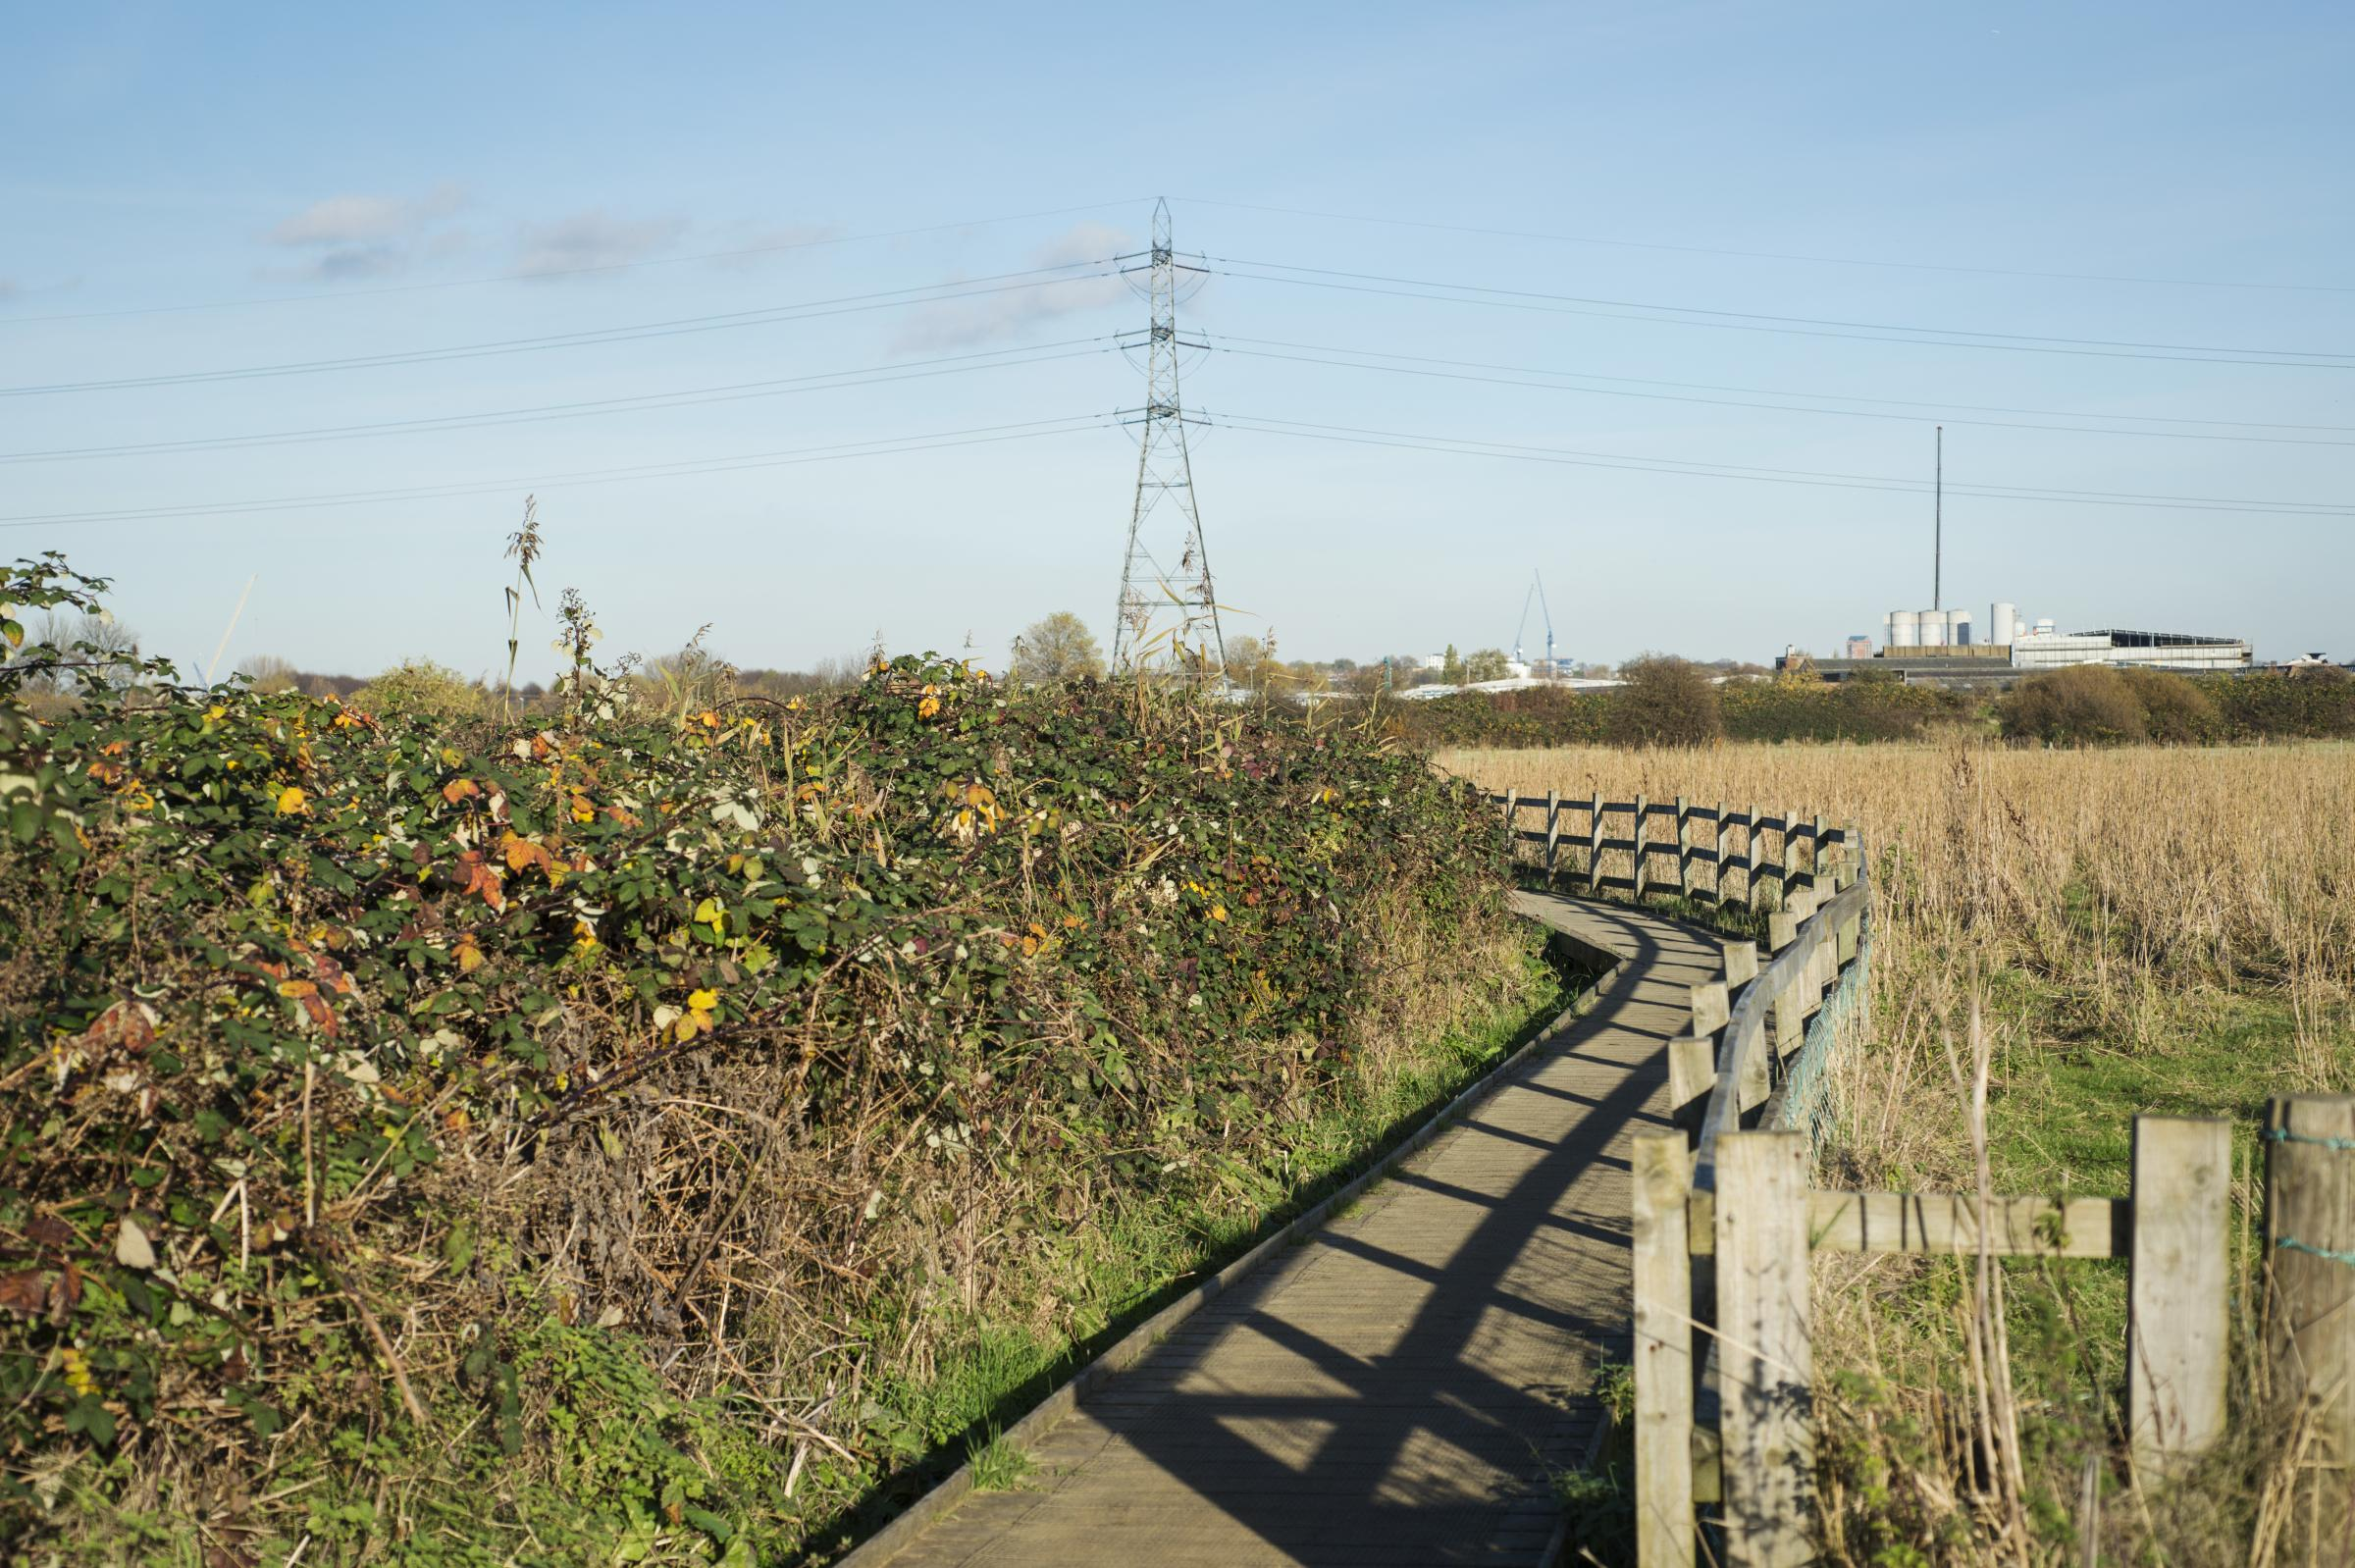 Lee Valley Regional Park.  Walthamstow Marshes, London E10.  18th November 2012. Photo Copyright: Eleanor Bentall